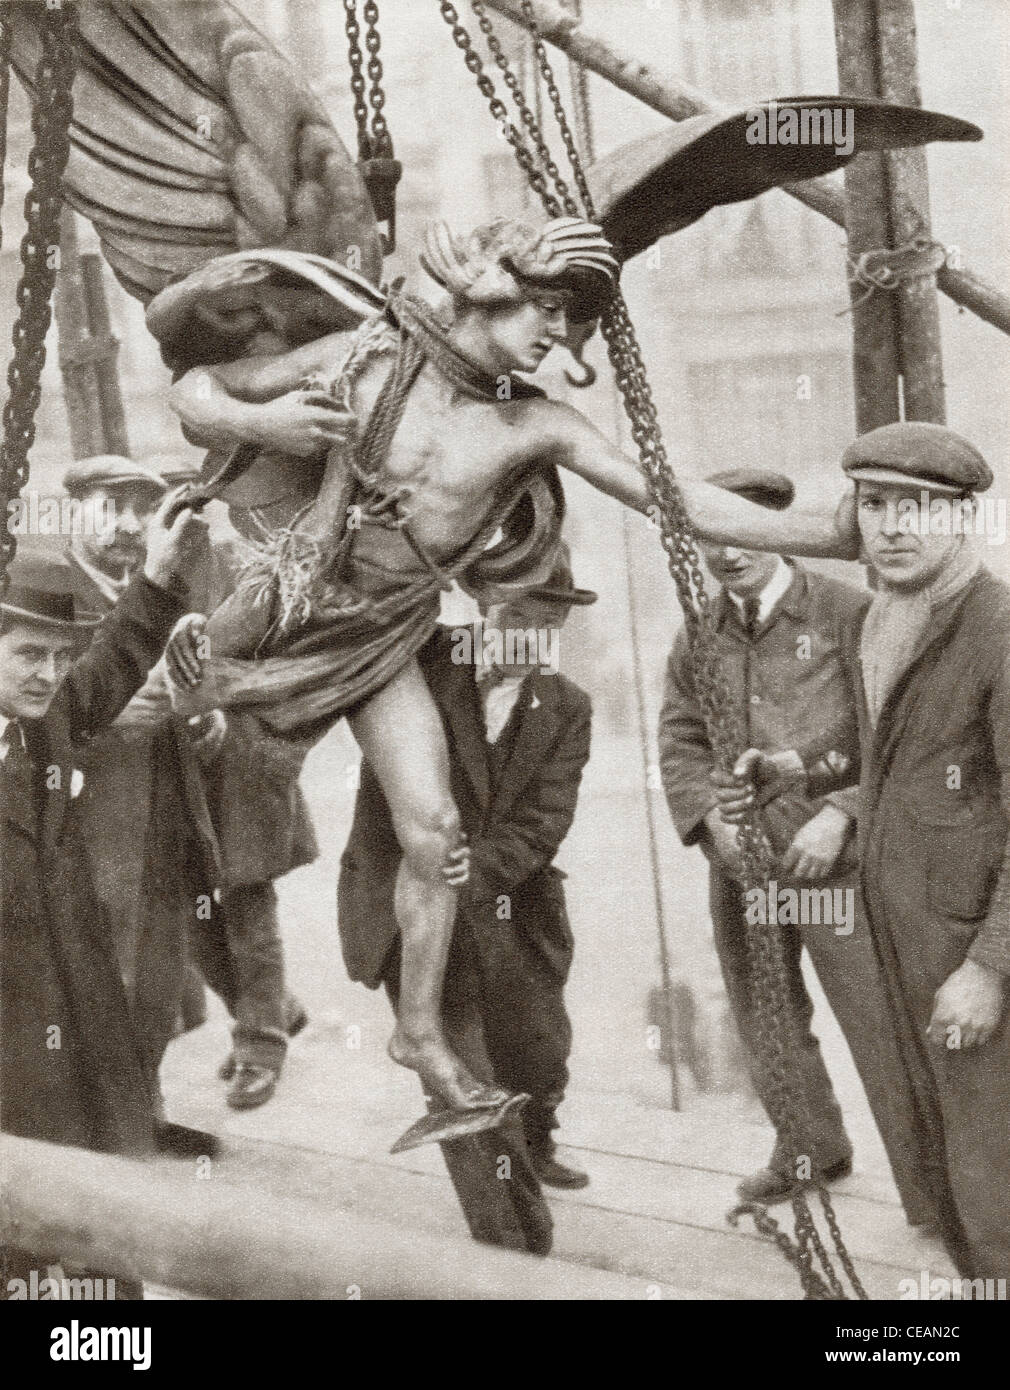 Removal of statue of Eros from Piccadilly Circus, London, England in 1925 during  reconstruction of underground - Stock Image